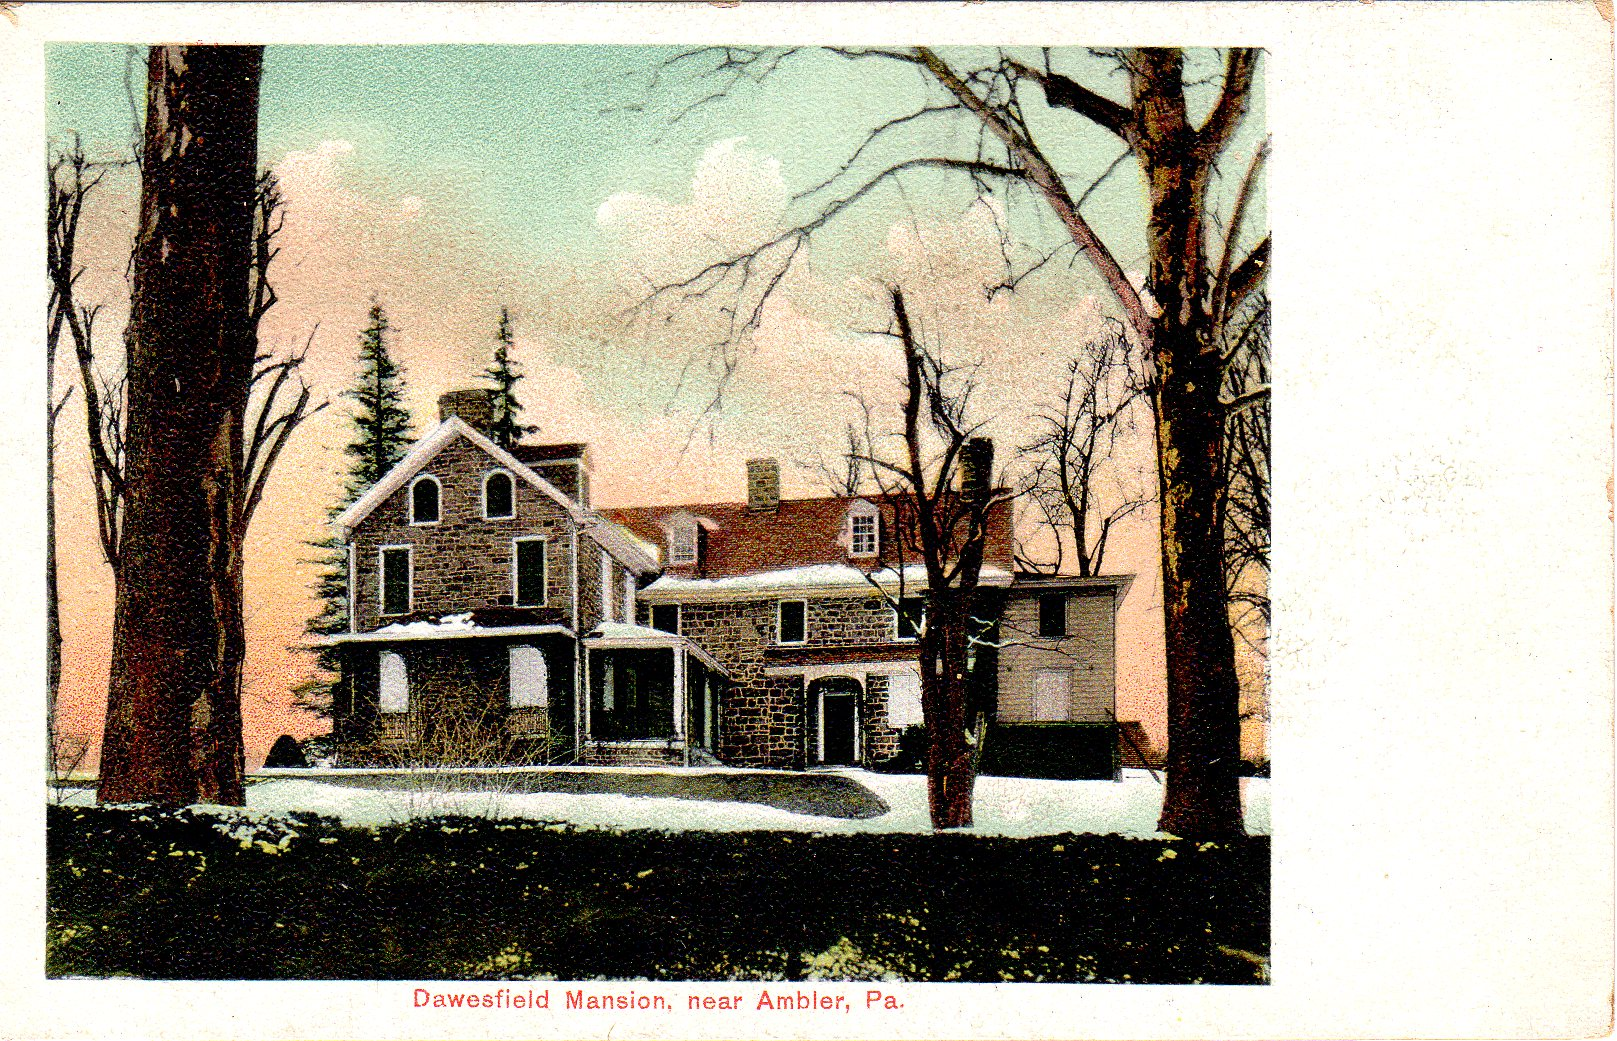 Post Card Collection (E Simon)_2682_65_Dawesfield Mansion near Ambler, Pa